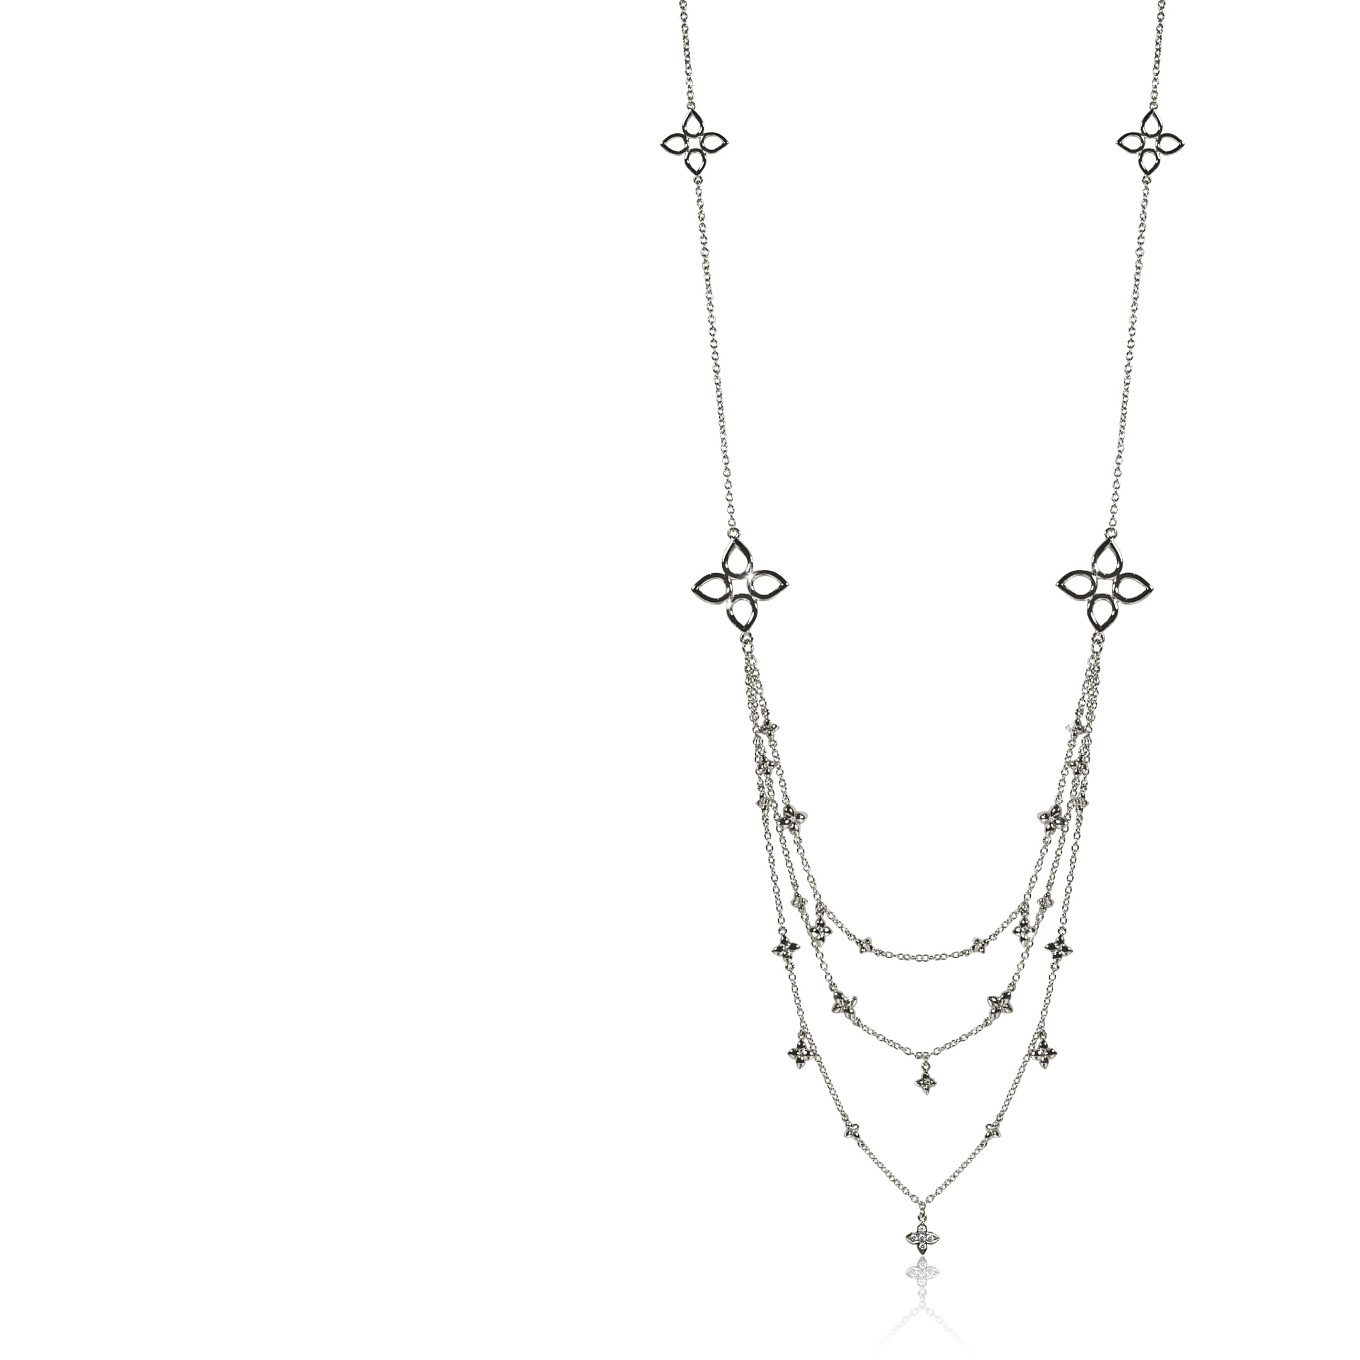 LAYERED THREE STRAND SEVILLA NECKLACE IN STERLING SILVER